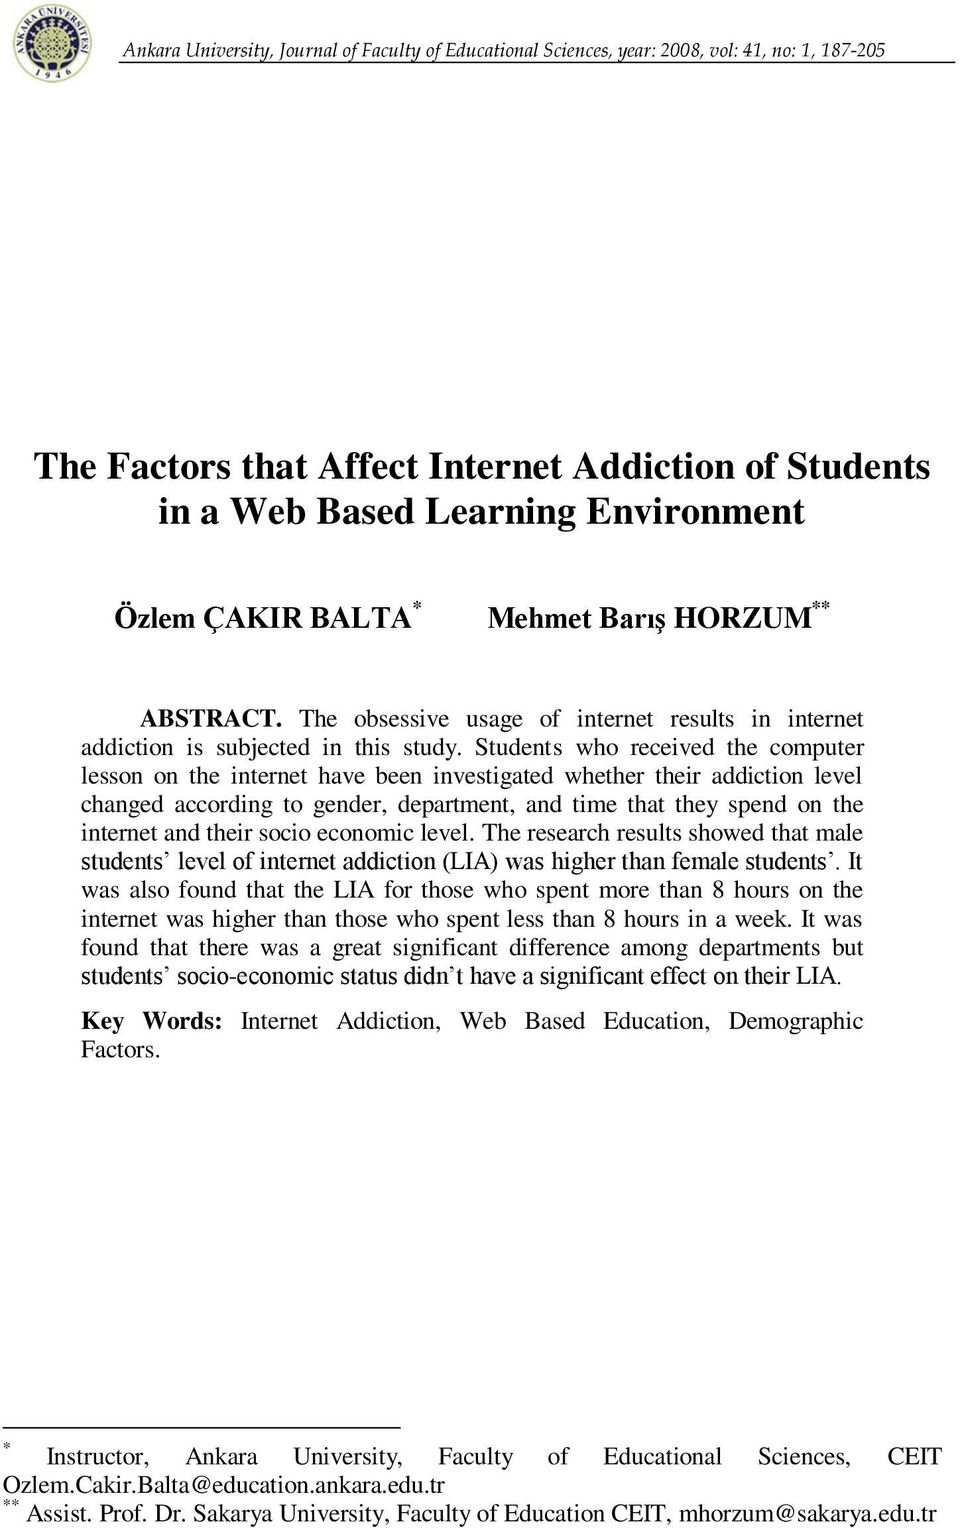 Students who received the computer lesson on the internet have been investigated whether their addiction level changed according to gender, department, and time that they spend on the internet and